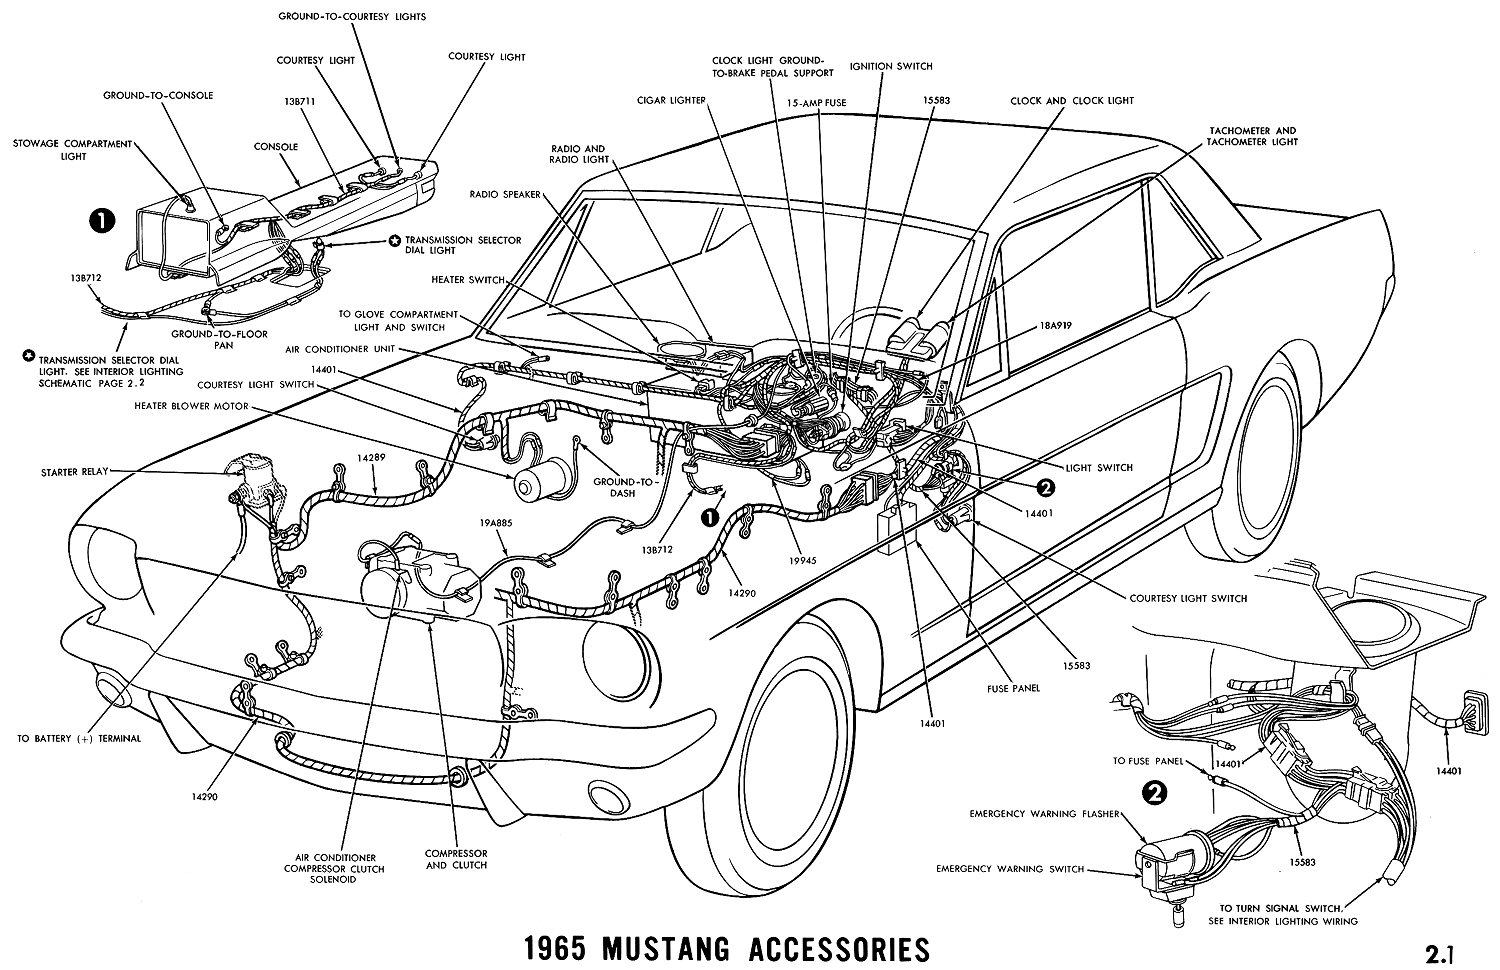 1965 mustang console wiring harness today wiring schematic diagram 1966 Mustang Manual Transmission Console